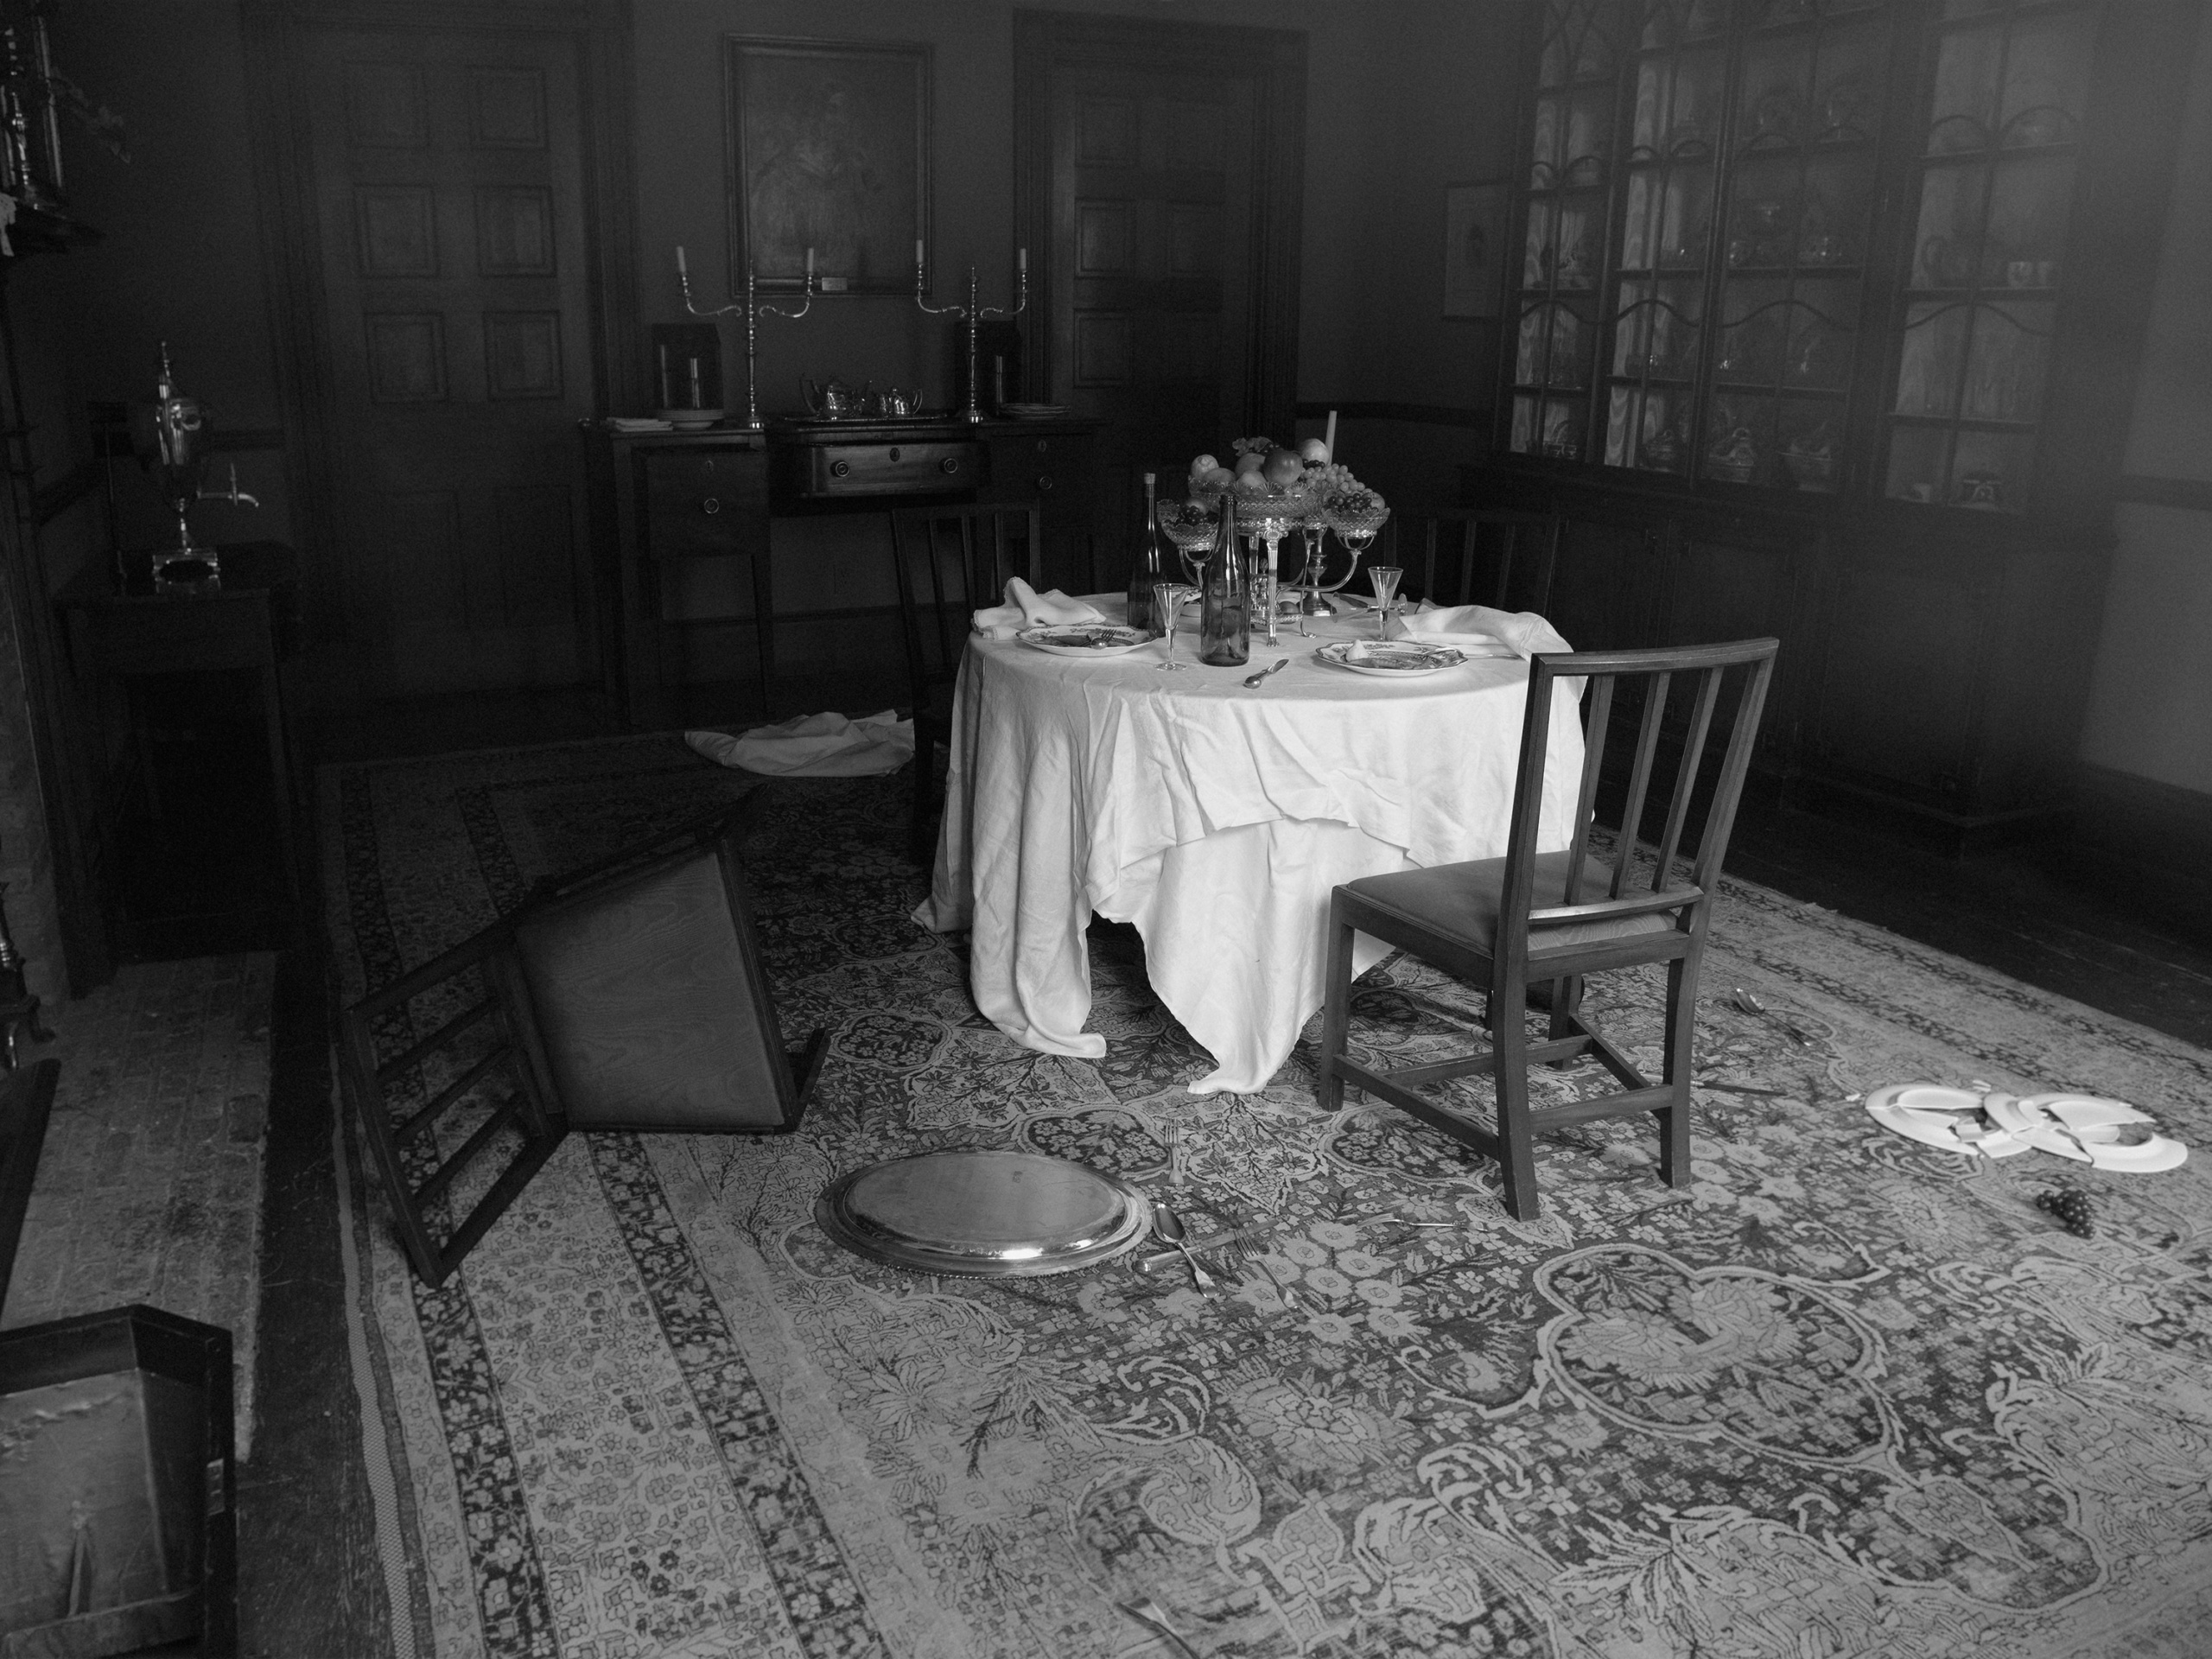 Tereza Zelenkova, Dining Room II, Campbell House, 2020. Courtesy the artist and The Ravestijn Gallery, Amsterdam